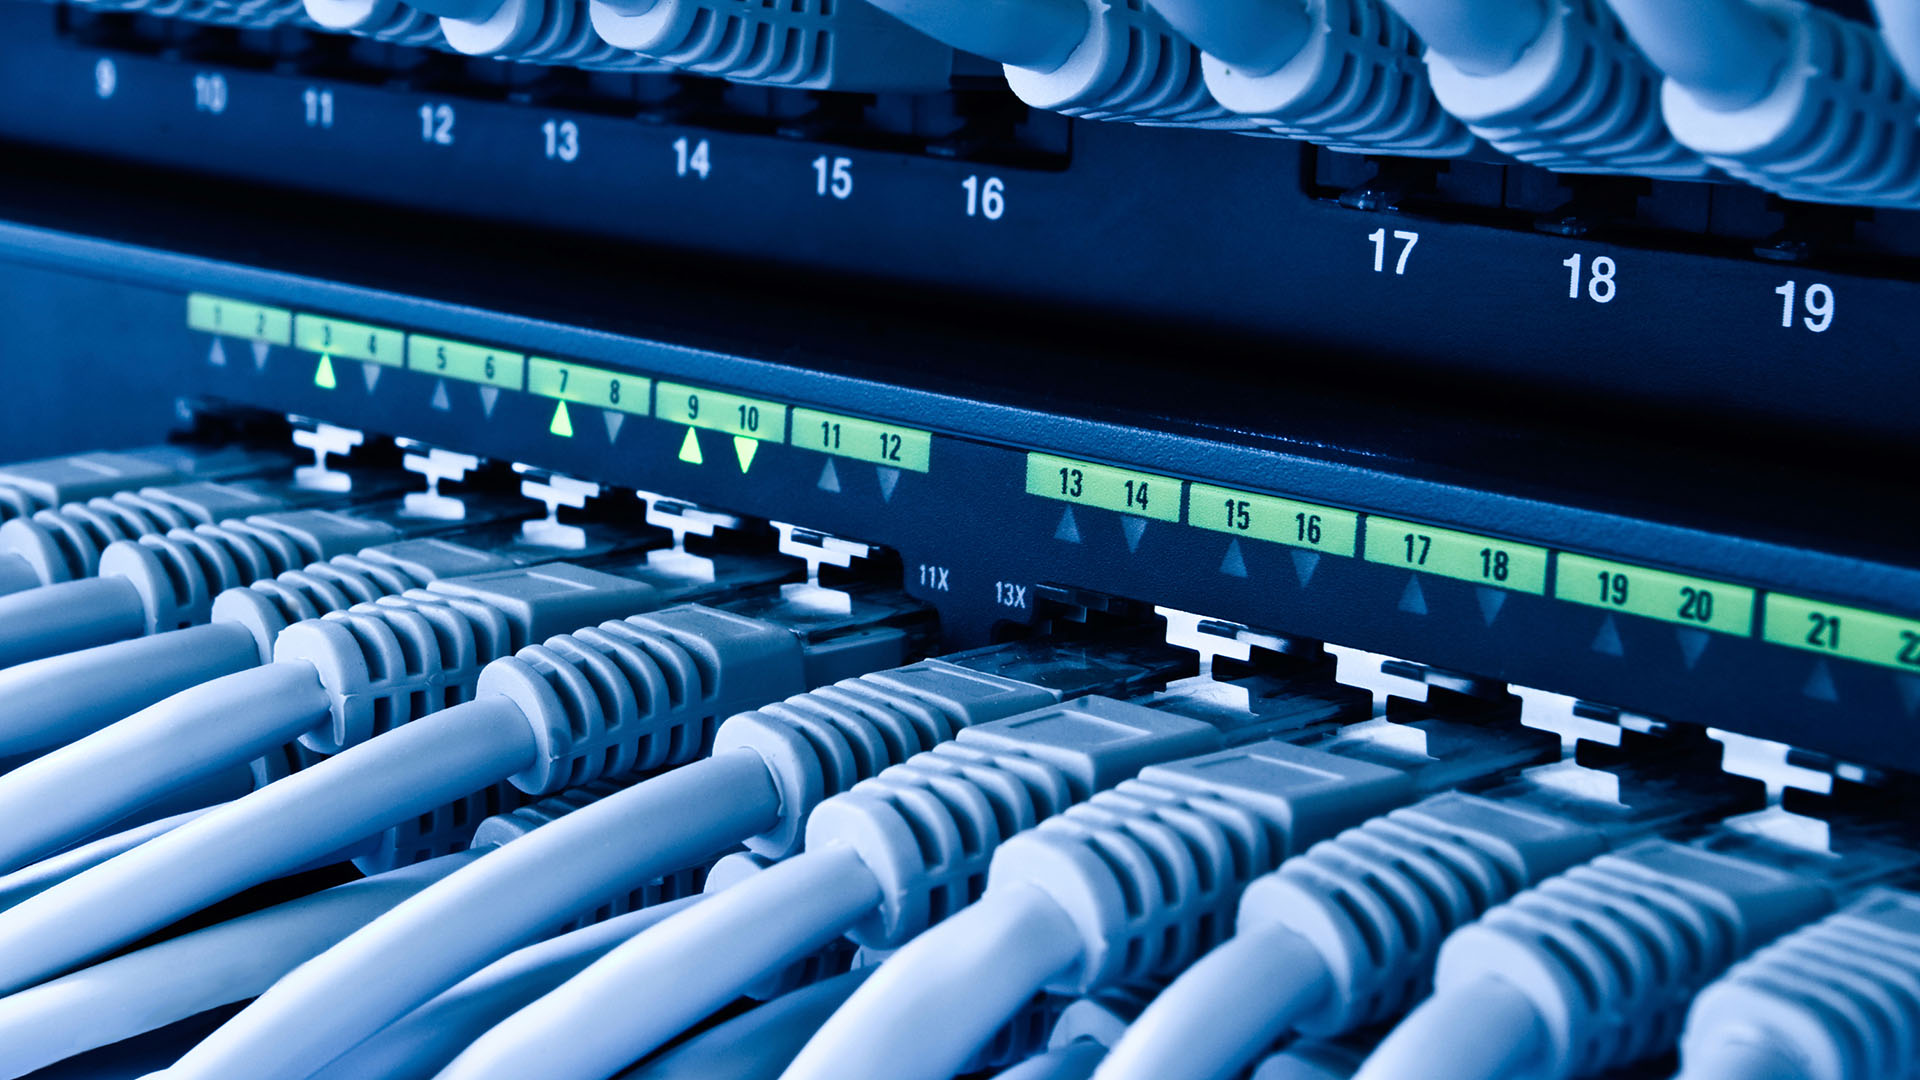 Mount Sterling Kentucky Superior Voice & Data Network Cabling Solutions